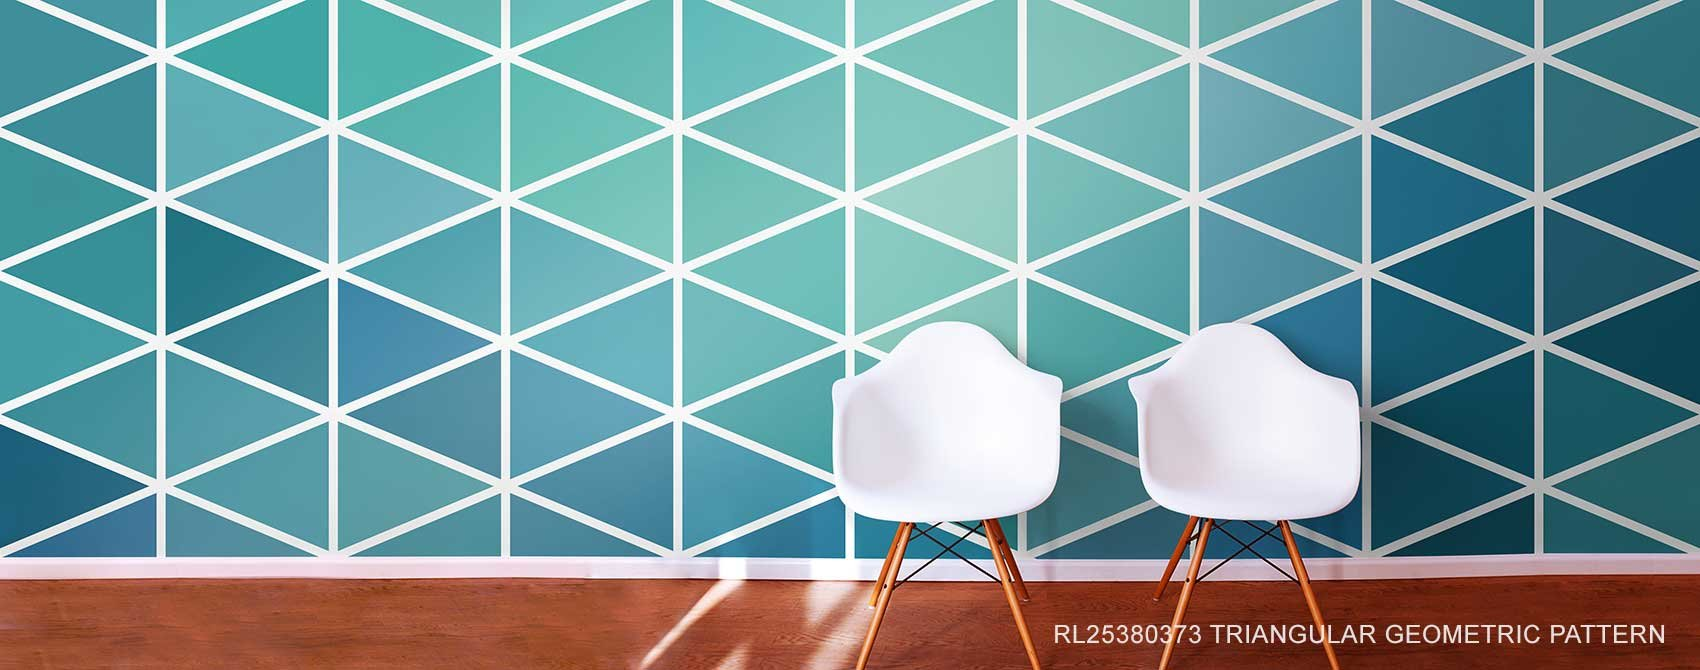 Triangular Geometric Pattern Wallpaper